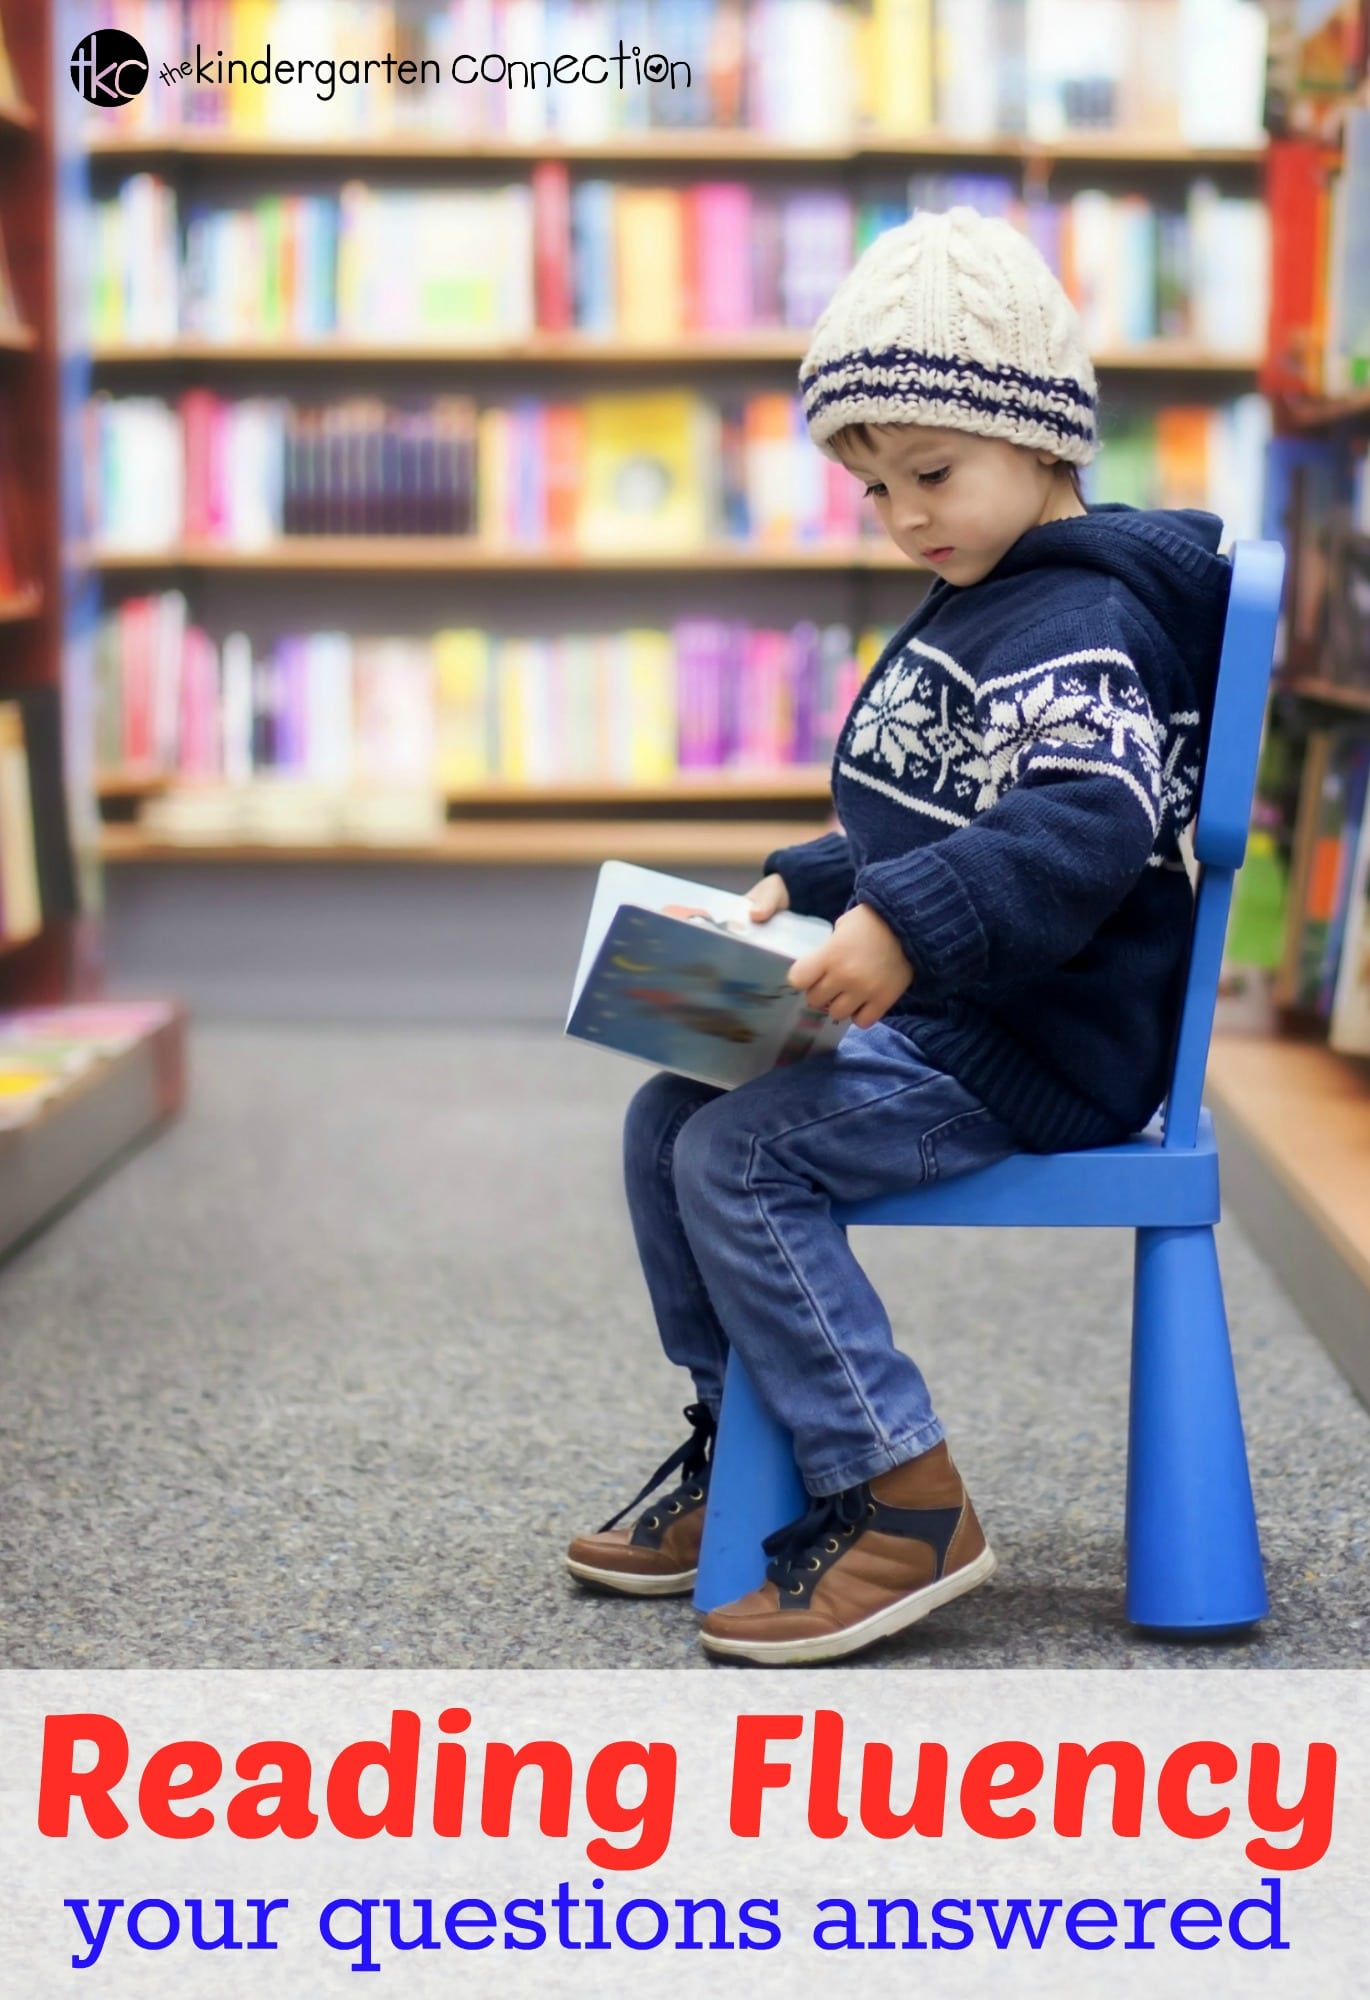 Reading fluency is one of the five components of reading and has a big impact on a child's success. All your fluency questions are answered here!